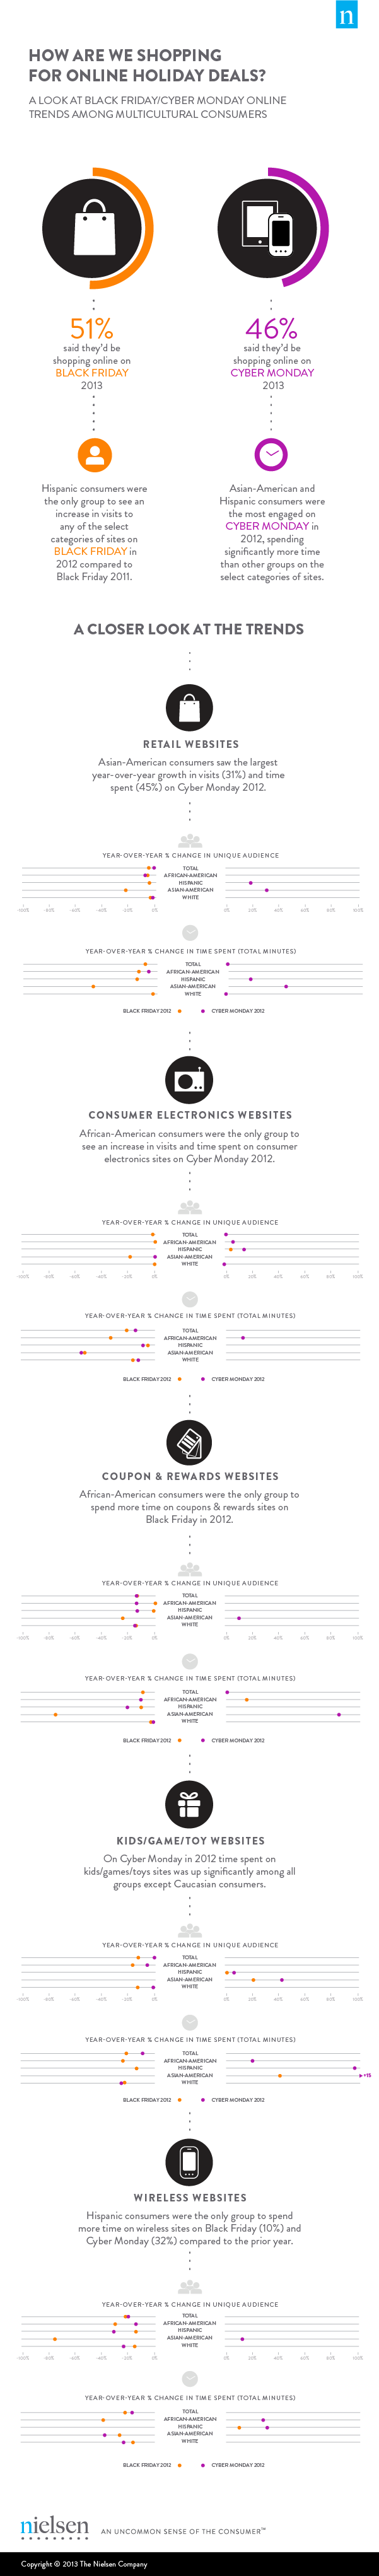 Online Holiday Deals Trends 2013-Infographic